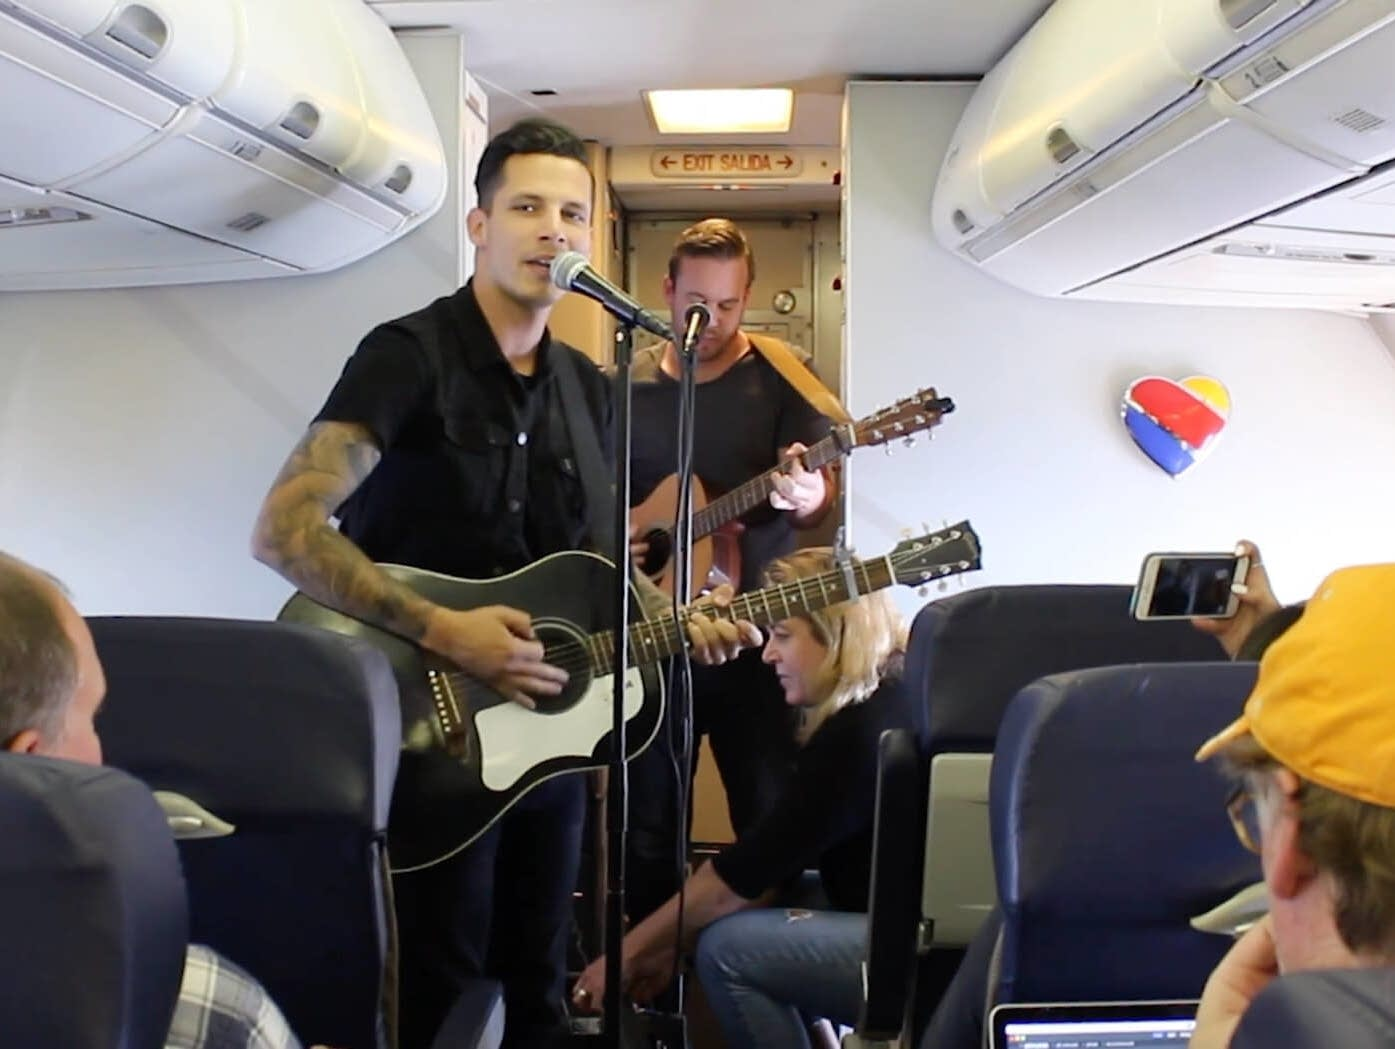 Southwest Airlines brings live concerts to mid-air flights